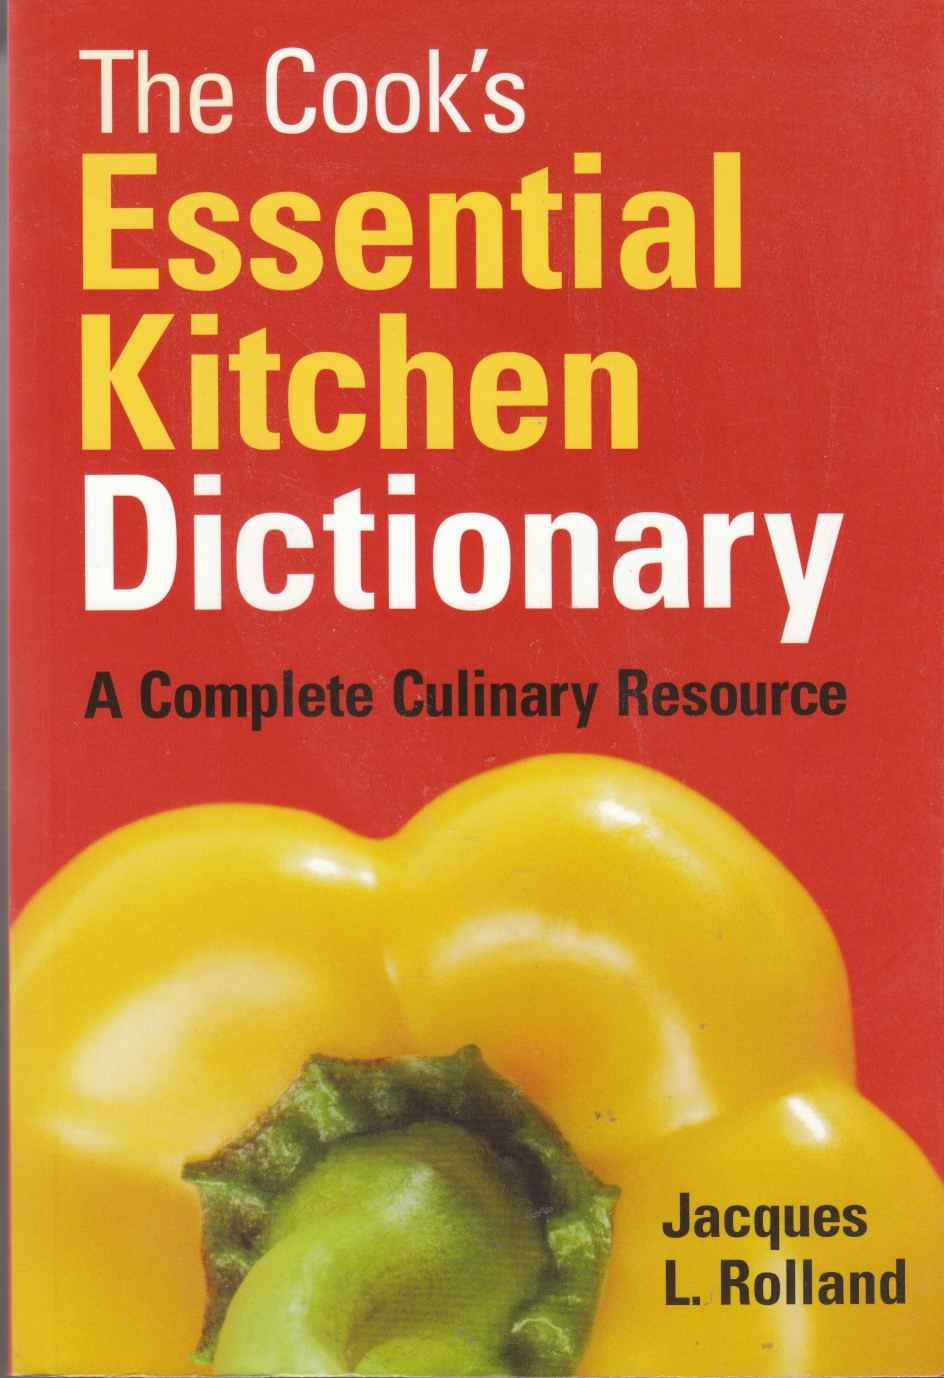 Image for The Cook's Essential Kitchen Dictionary A Complete Culinary Resource